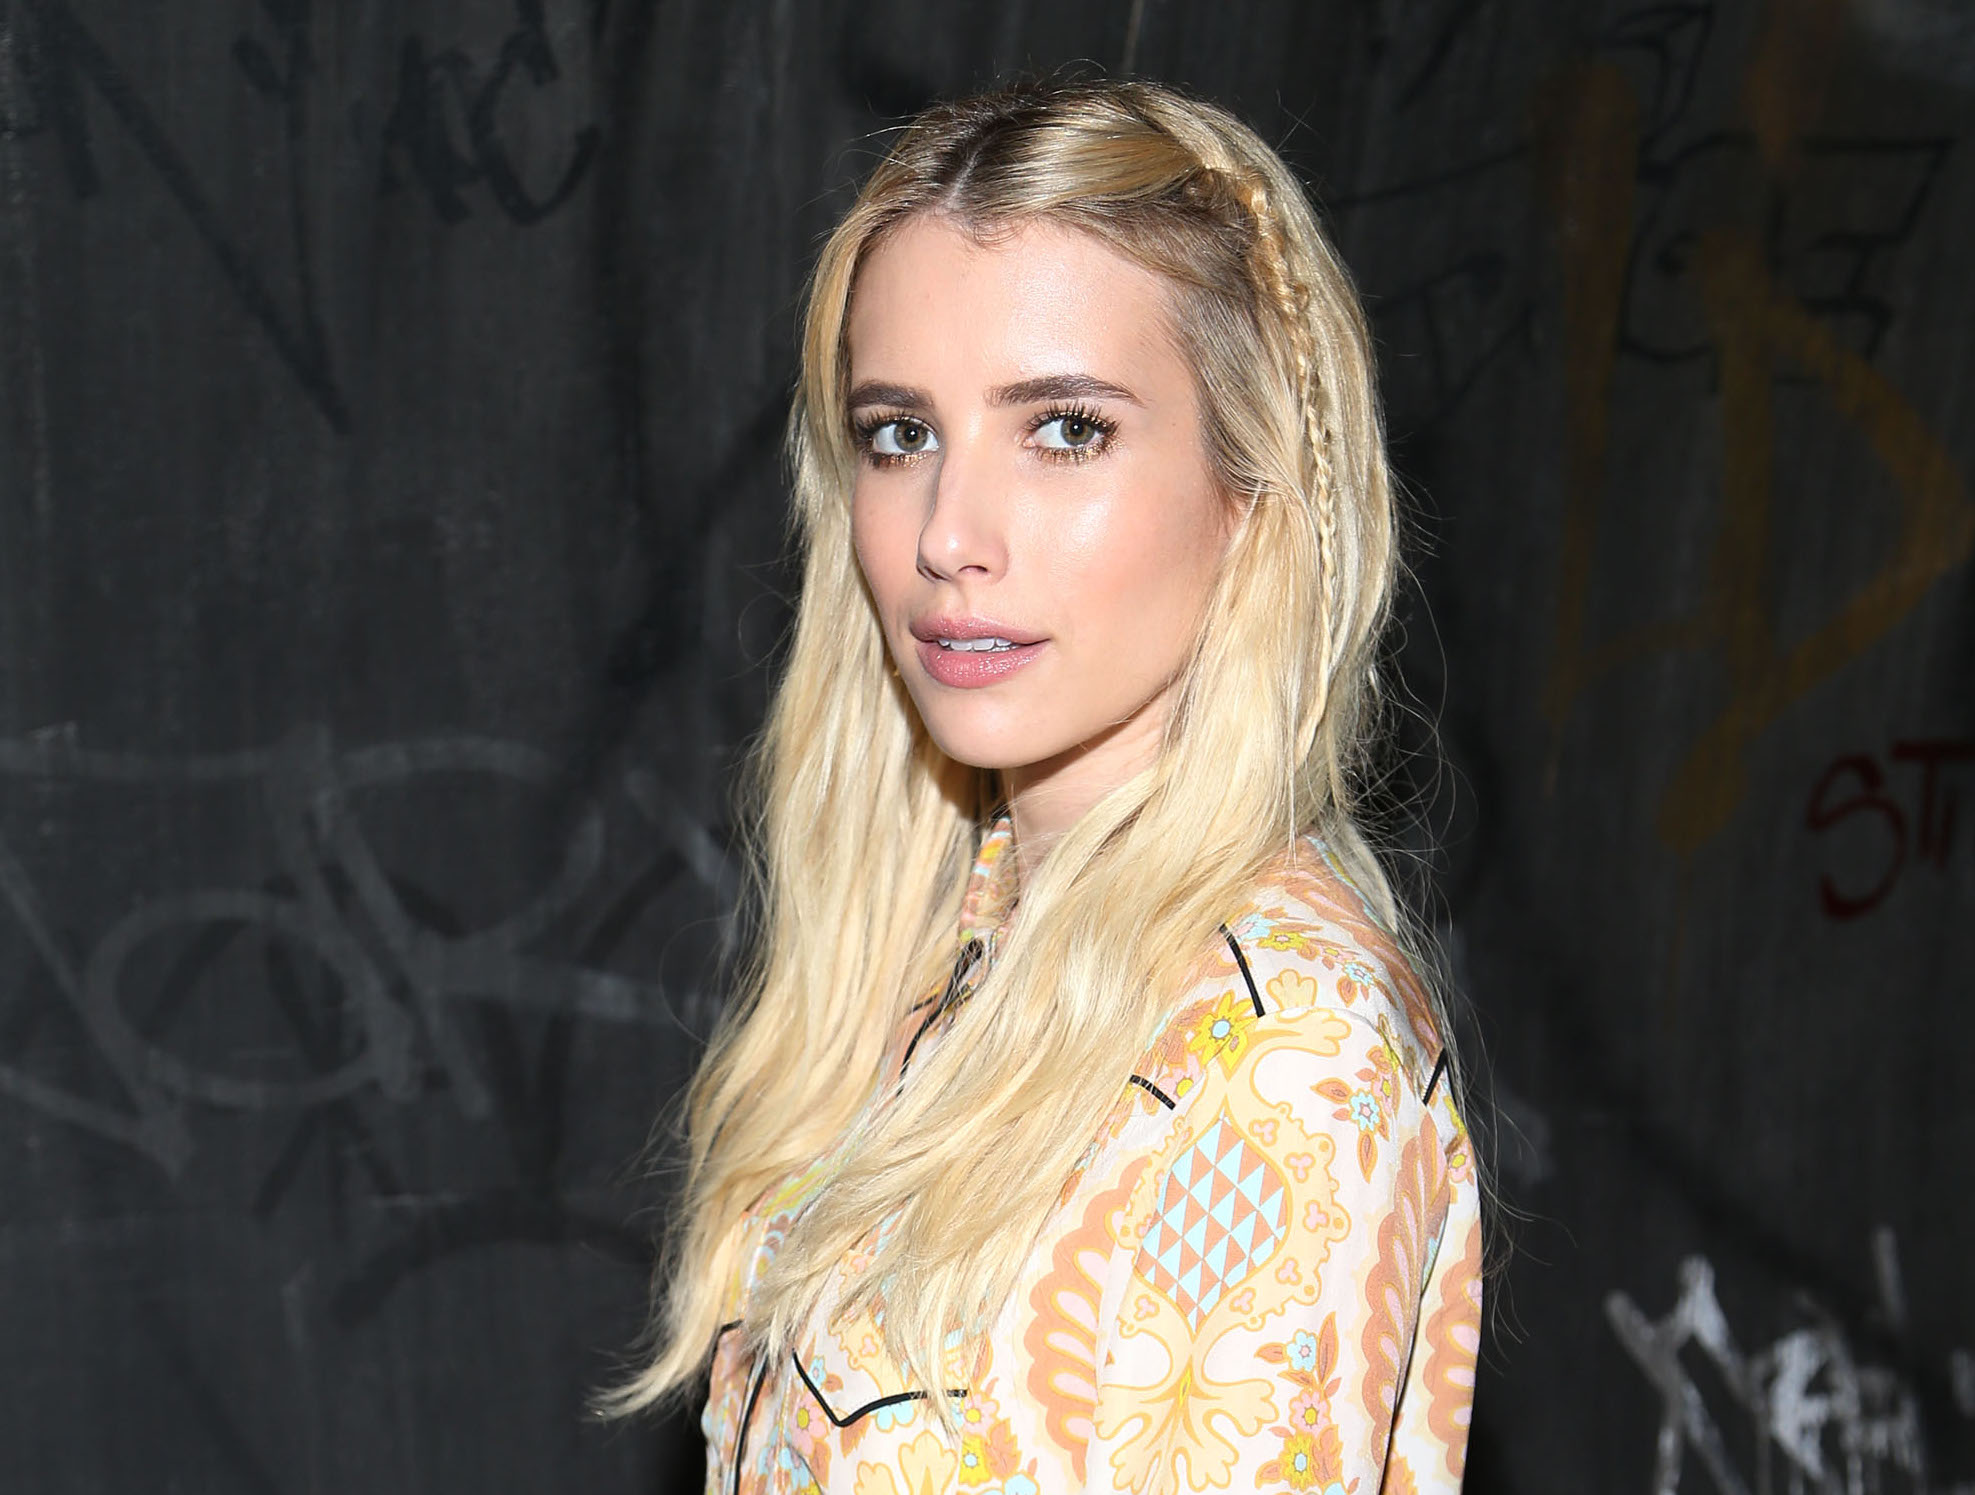 Emma Roberts looks like a pastel go-go dancer at New York Fashion Week